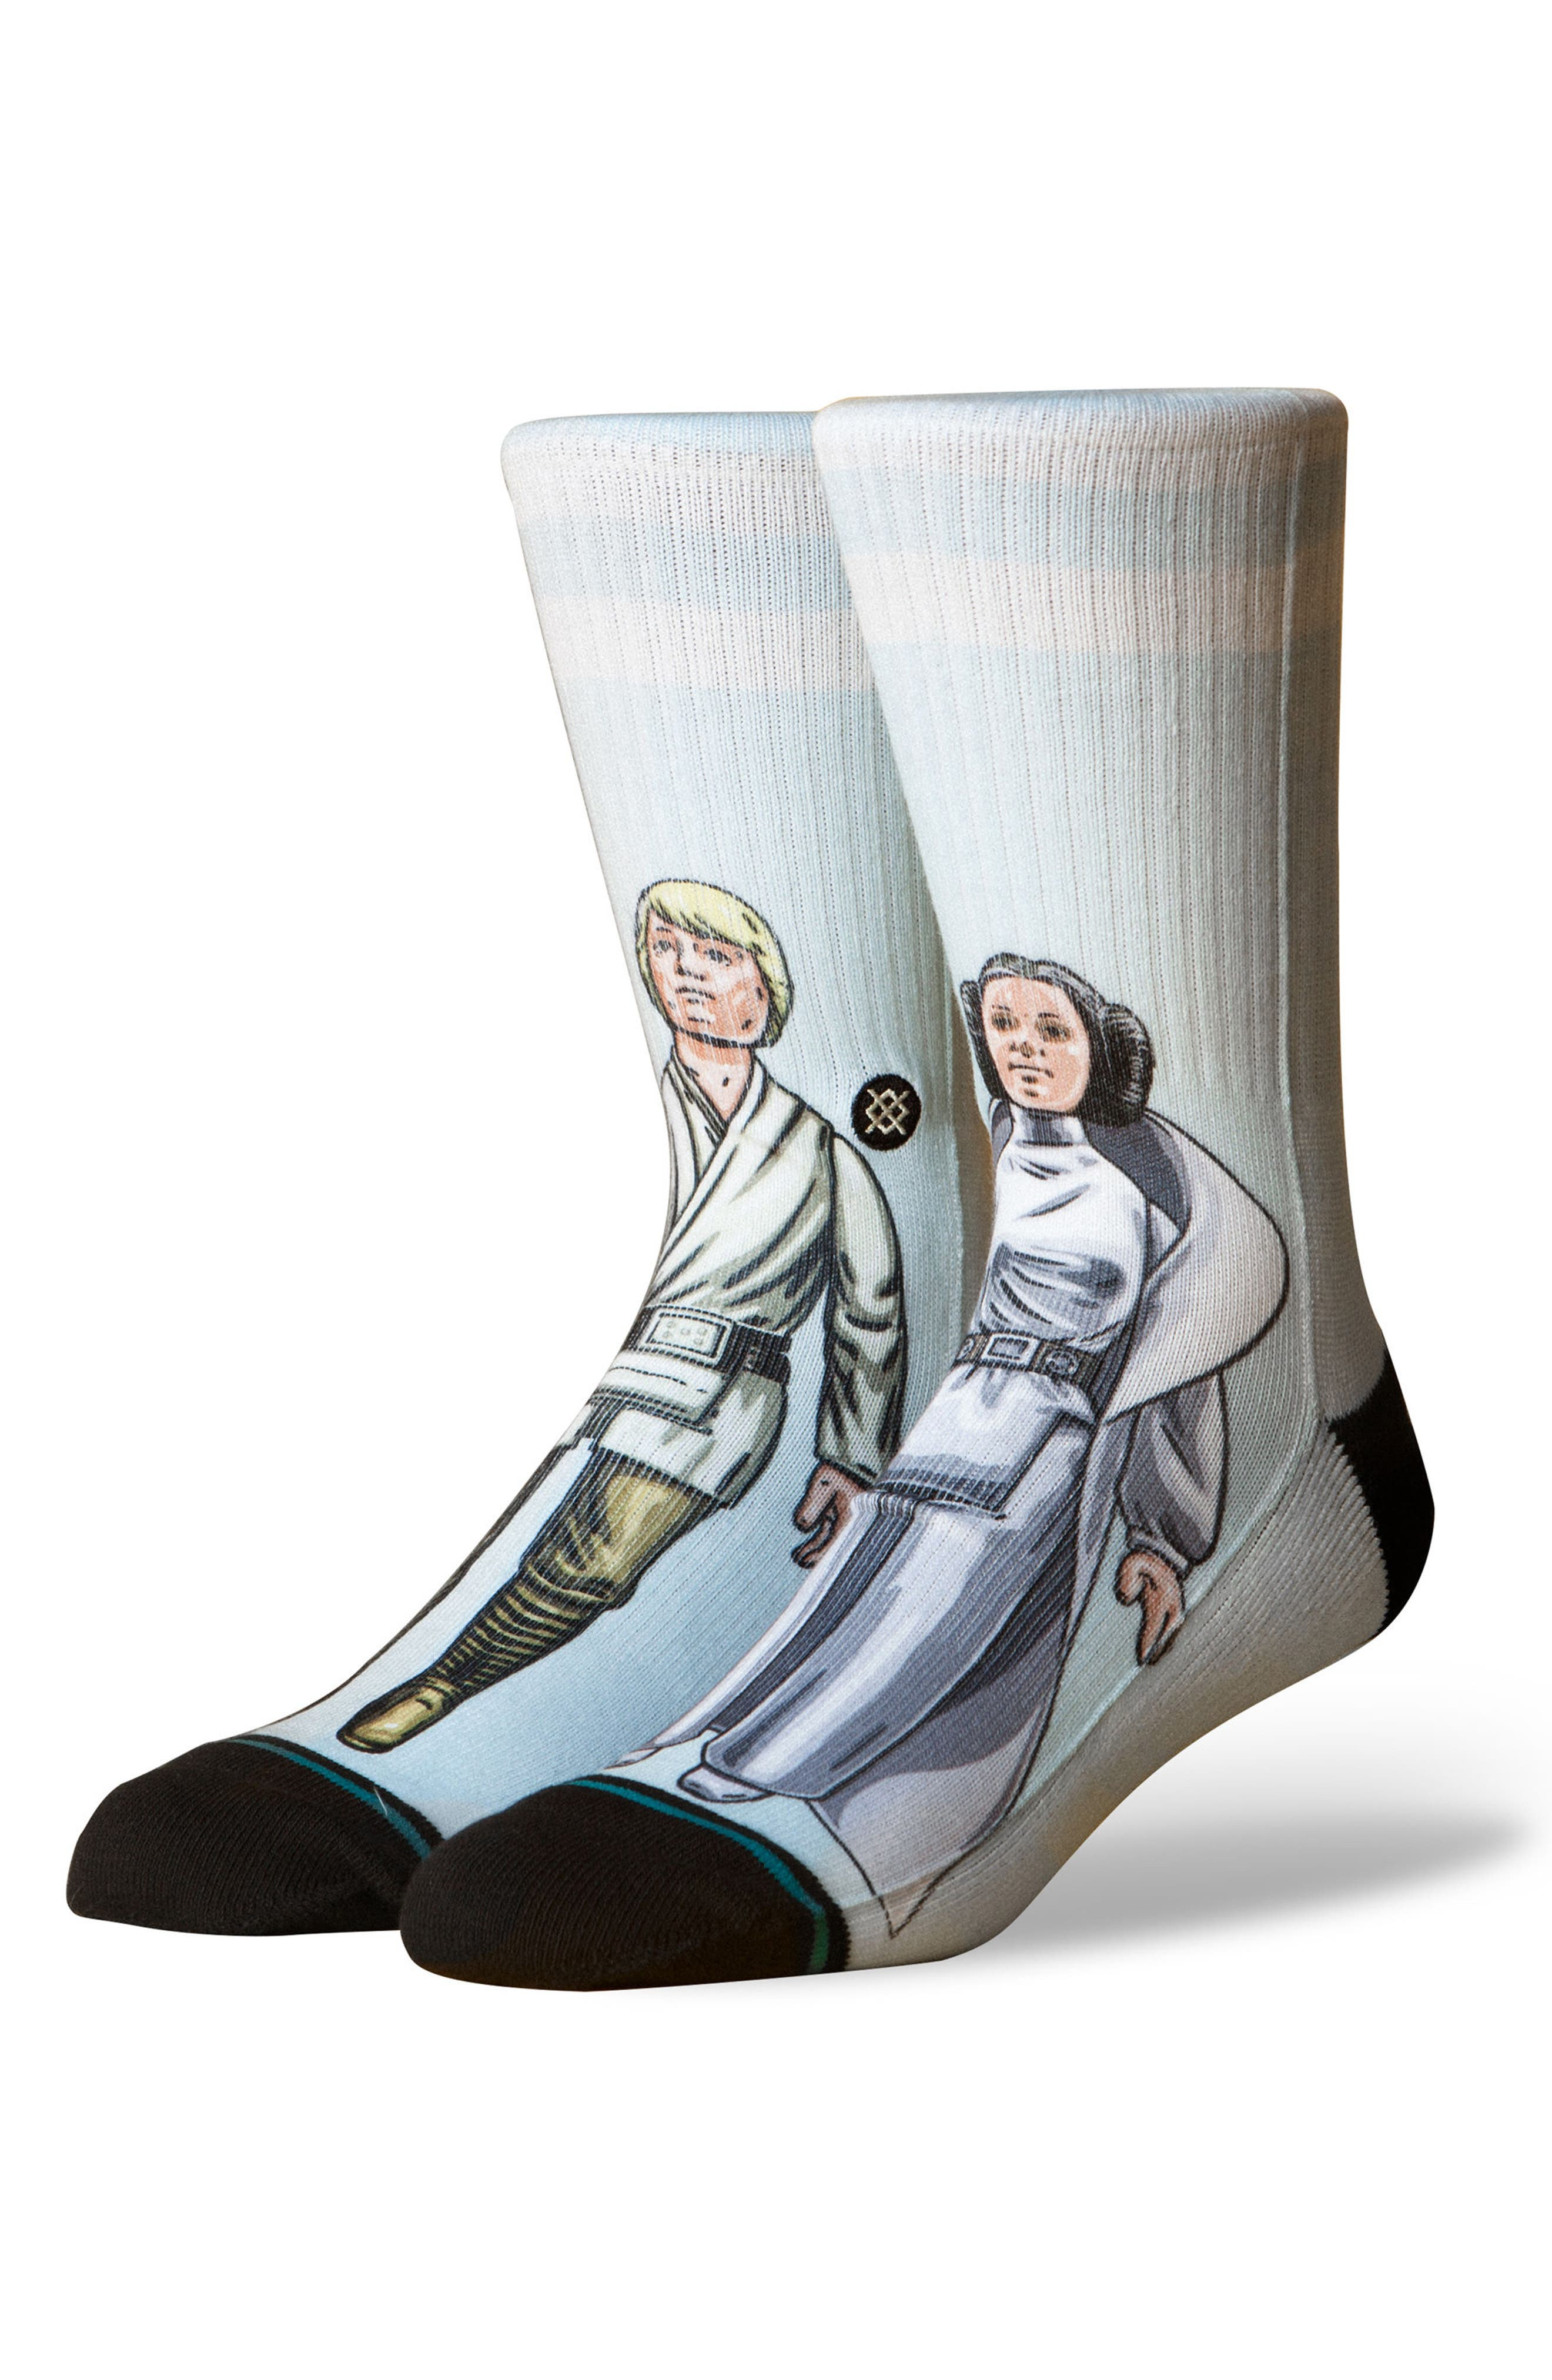 Star Wars<sup>™</sup> Family Force Socks,                         Main,                         color, 400